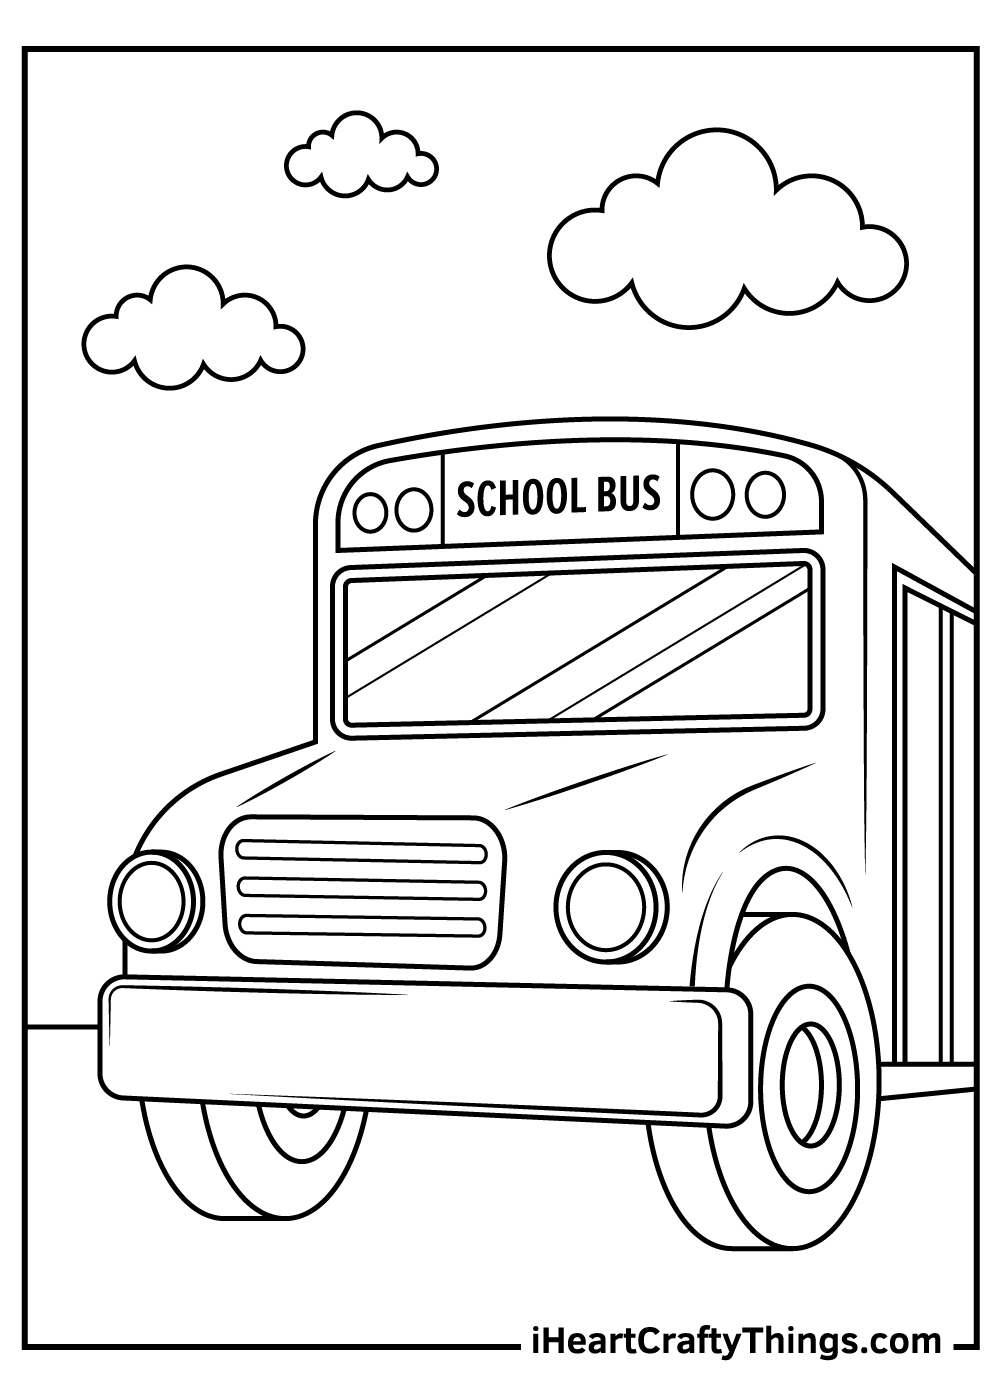 picture of school bus coloring pages